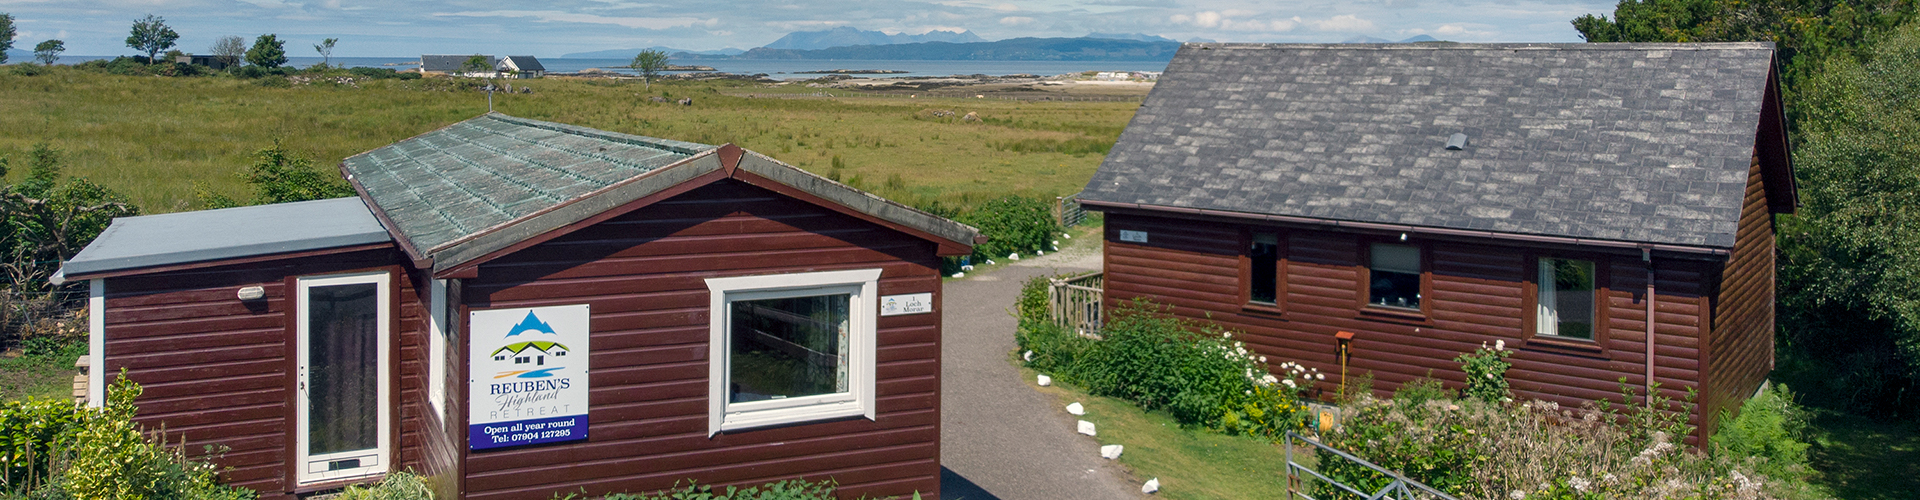 The entrance to Reuben's Highland Retreat Self Catering Lodges